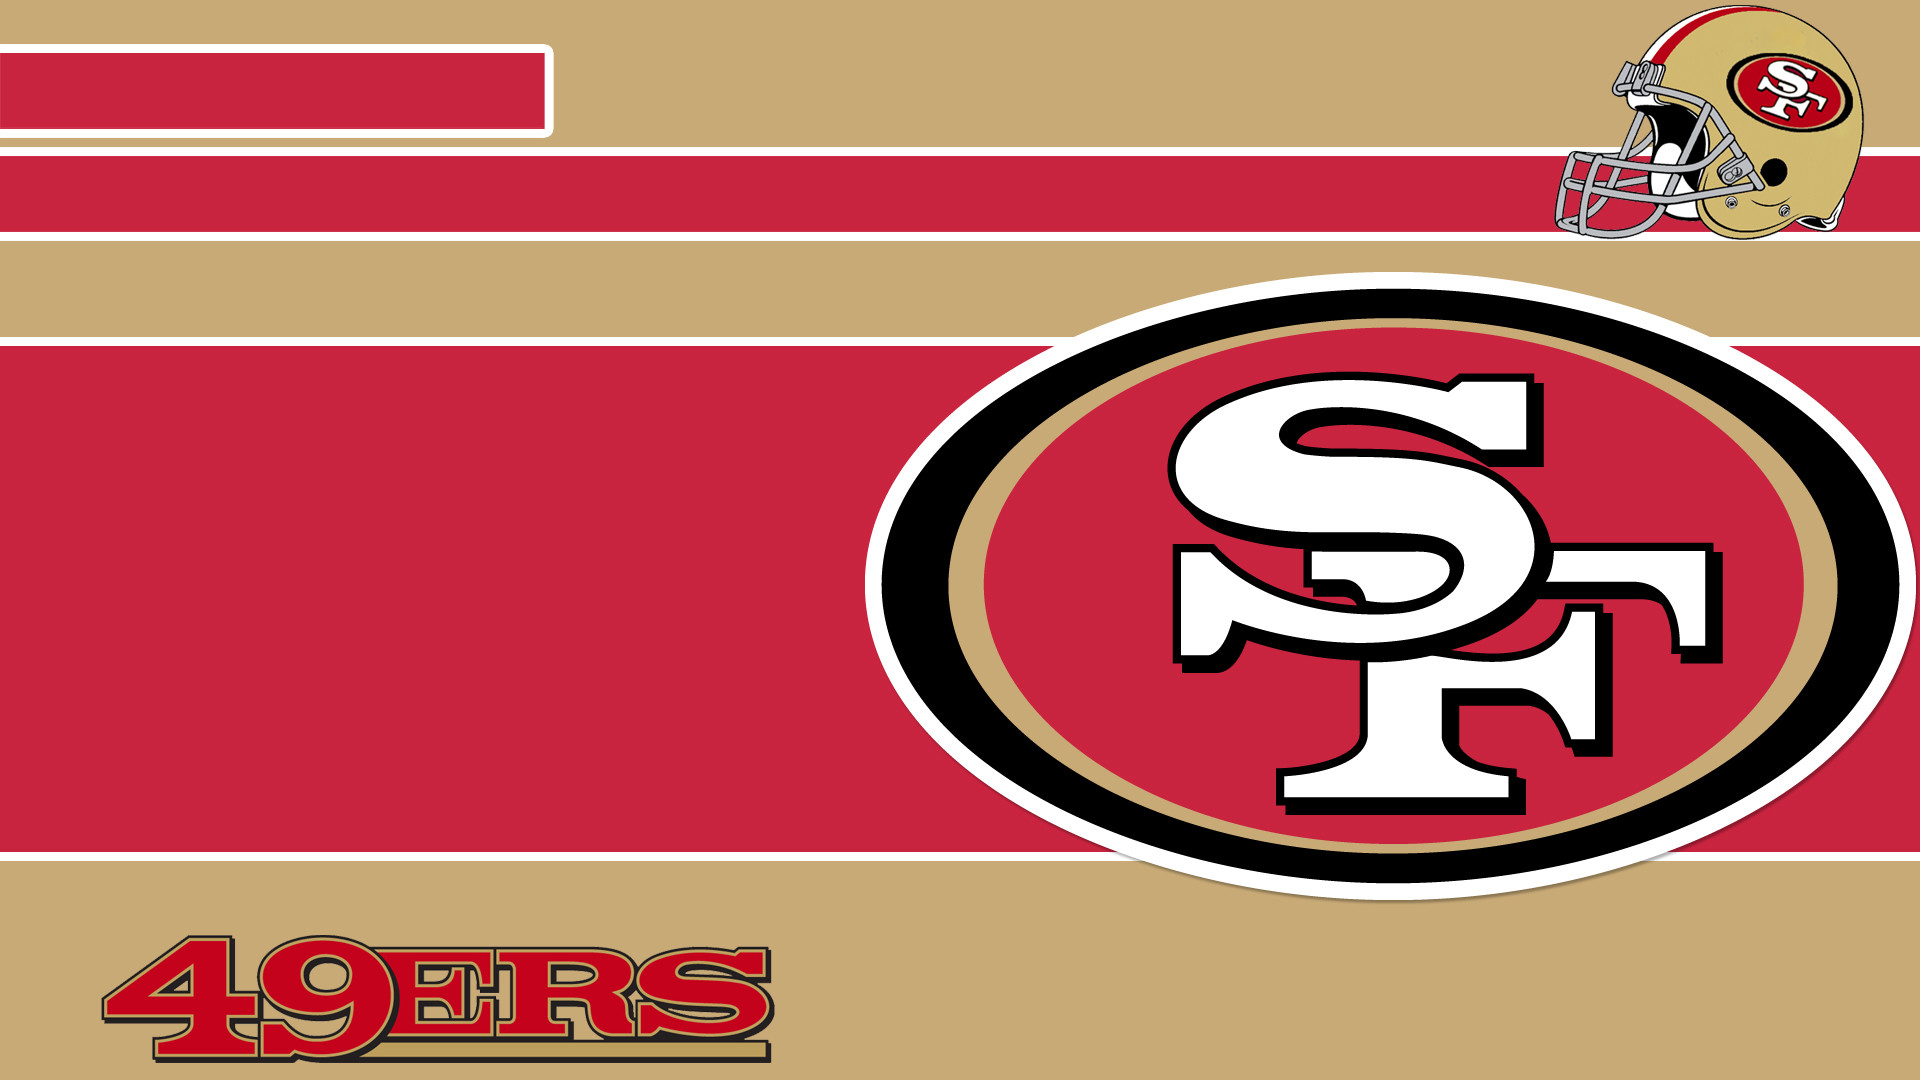 1920x1080 ... 49ers wallpaper good gallery image wall compudocs ...